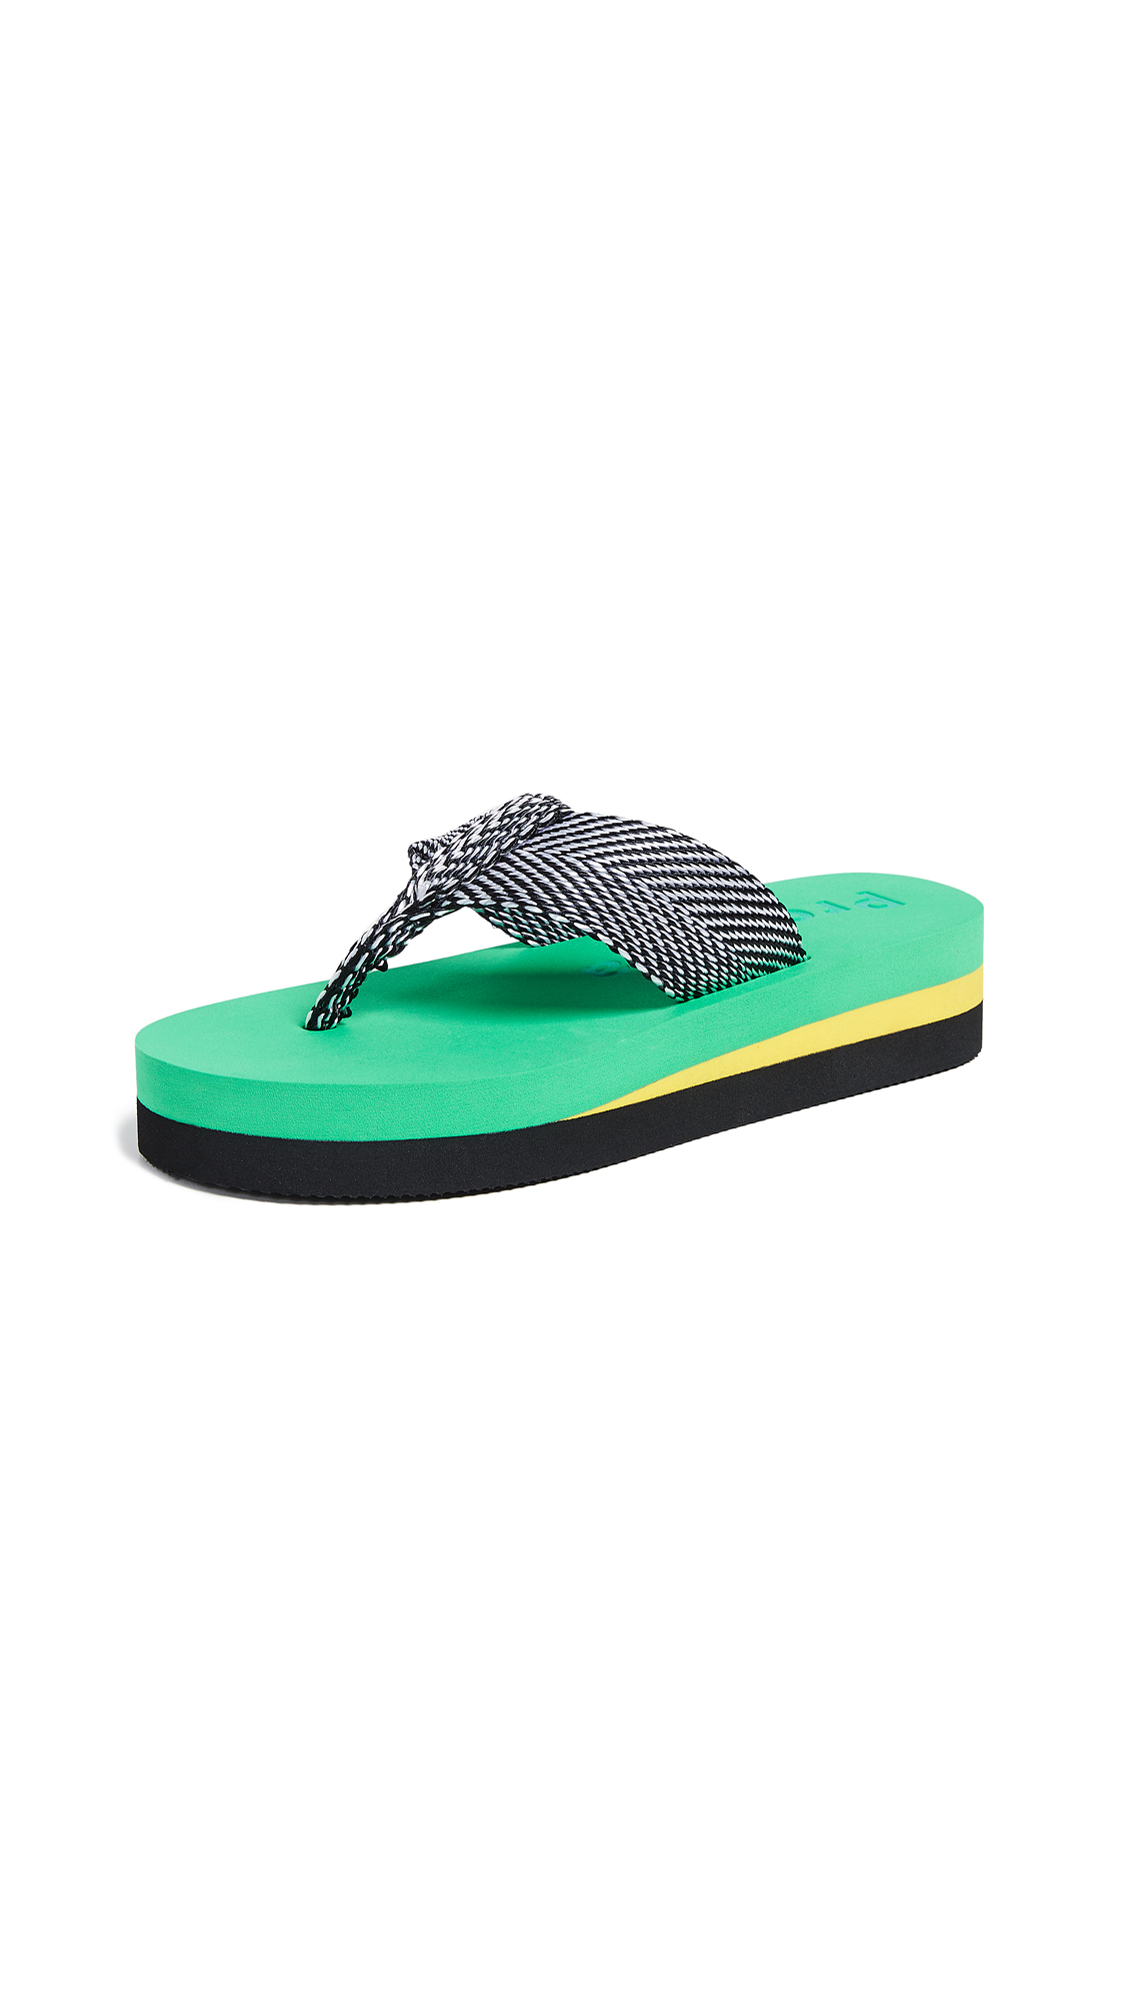 Proenza Schouler Chevron Flip Flops - Green/Yellow/Black